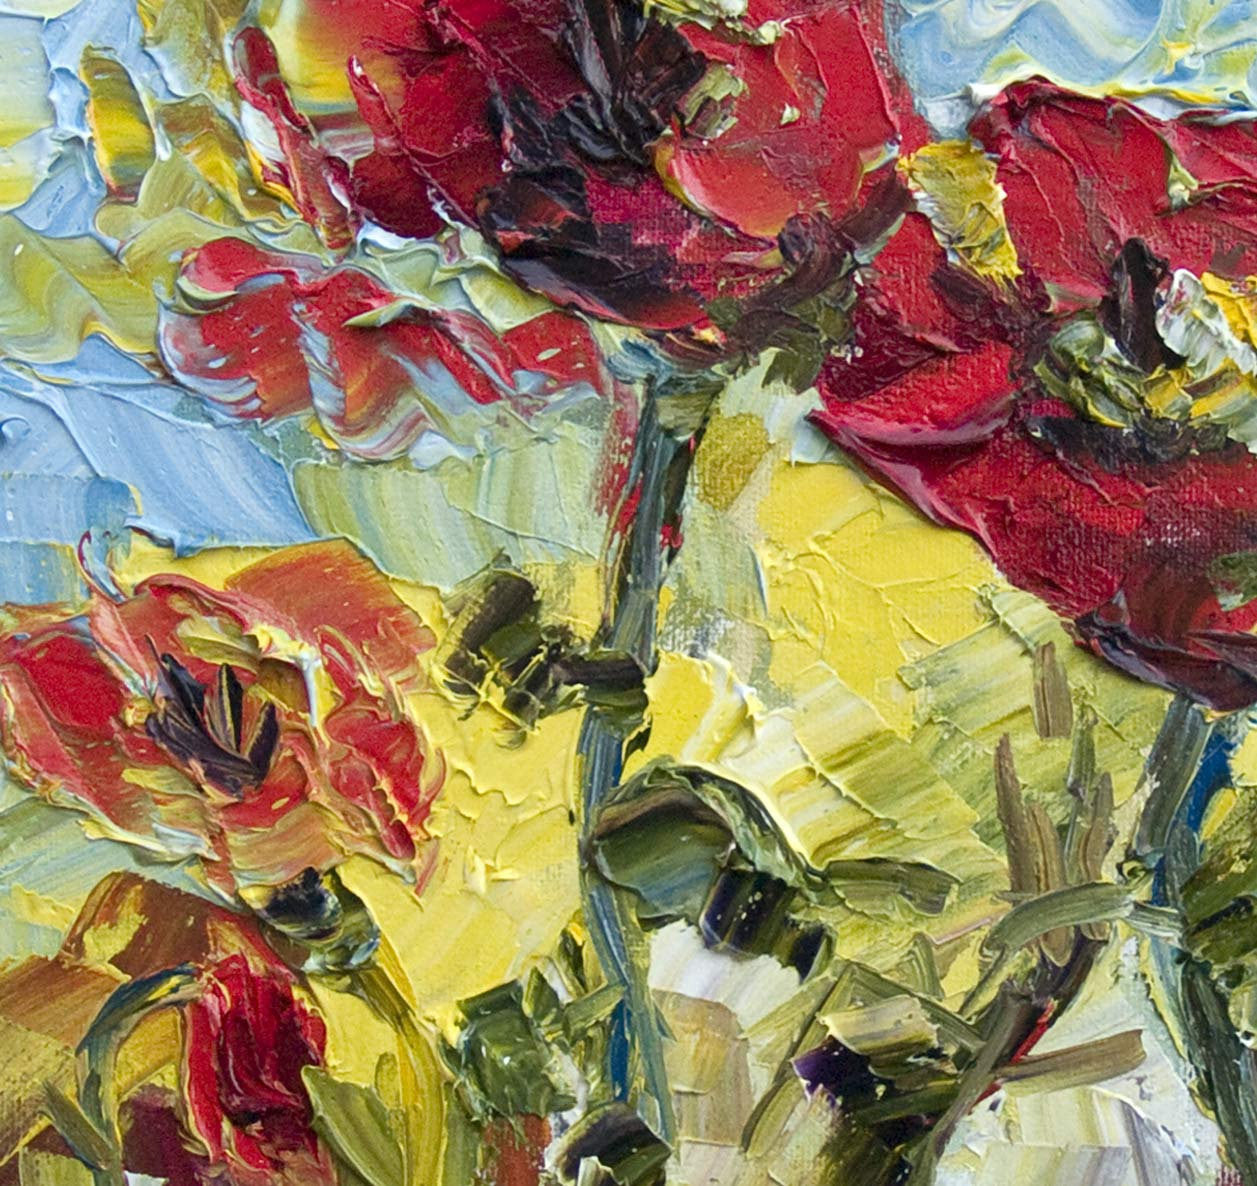 Red Poppies 12 by 12  Original Oil Painting Palette Knife by Ginette , Original Painting - Ginette Fine Art, The Art of Ginette Callaway  - 4